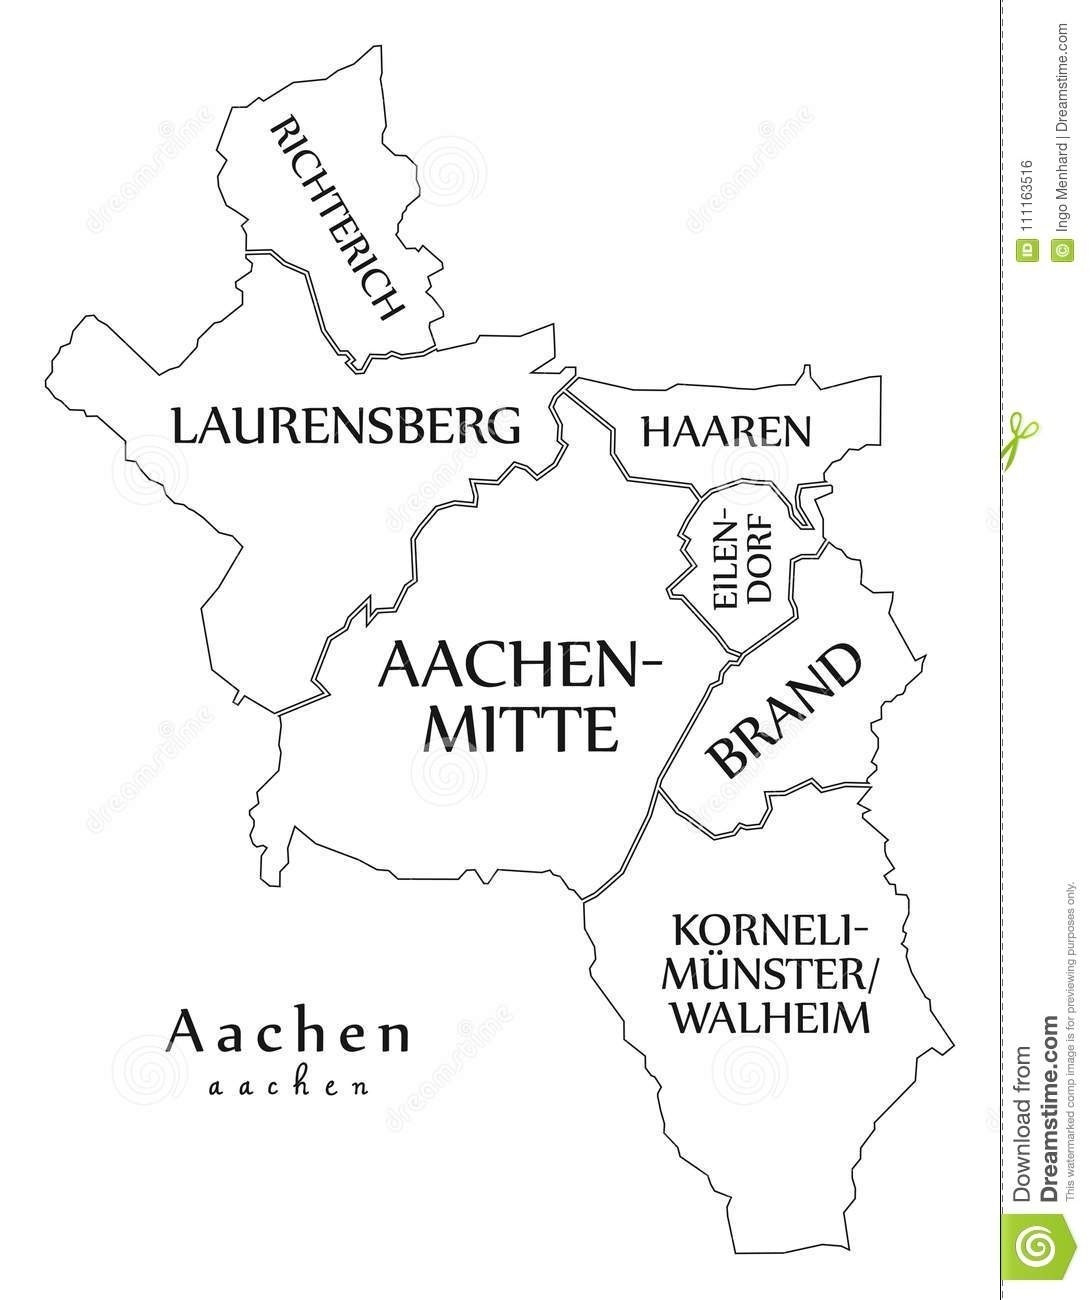 Modern City Map - Aachen City Of Germany With Boroughs And Title throughout Aachen Germany Map